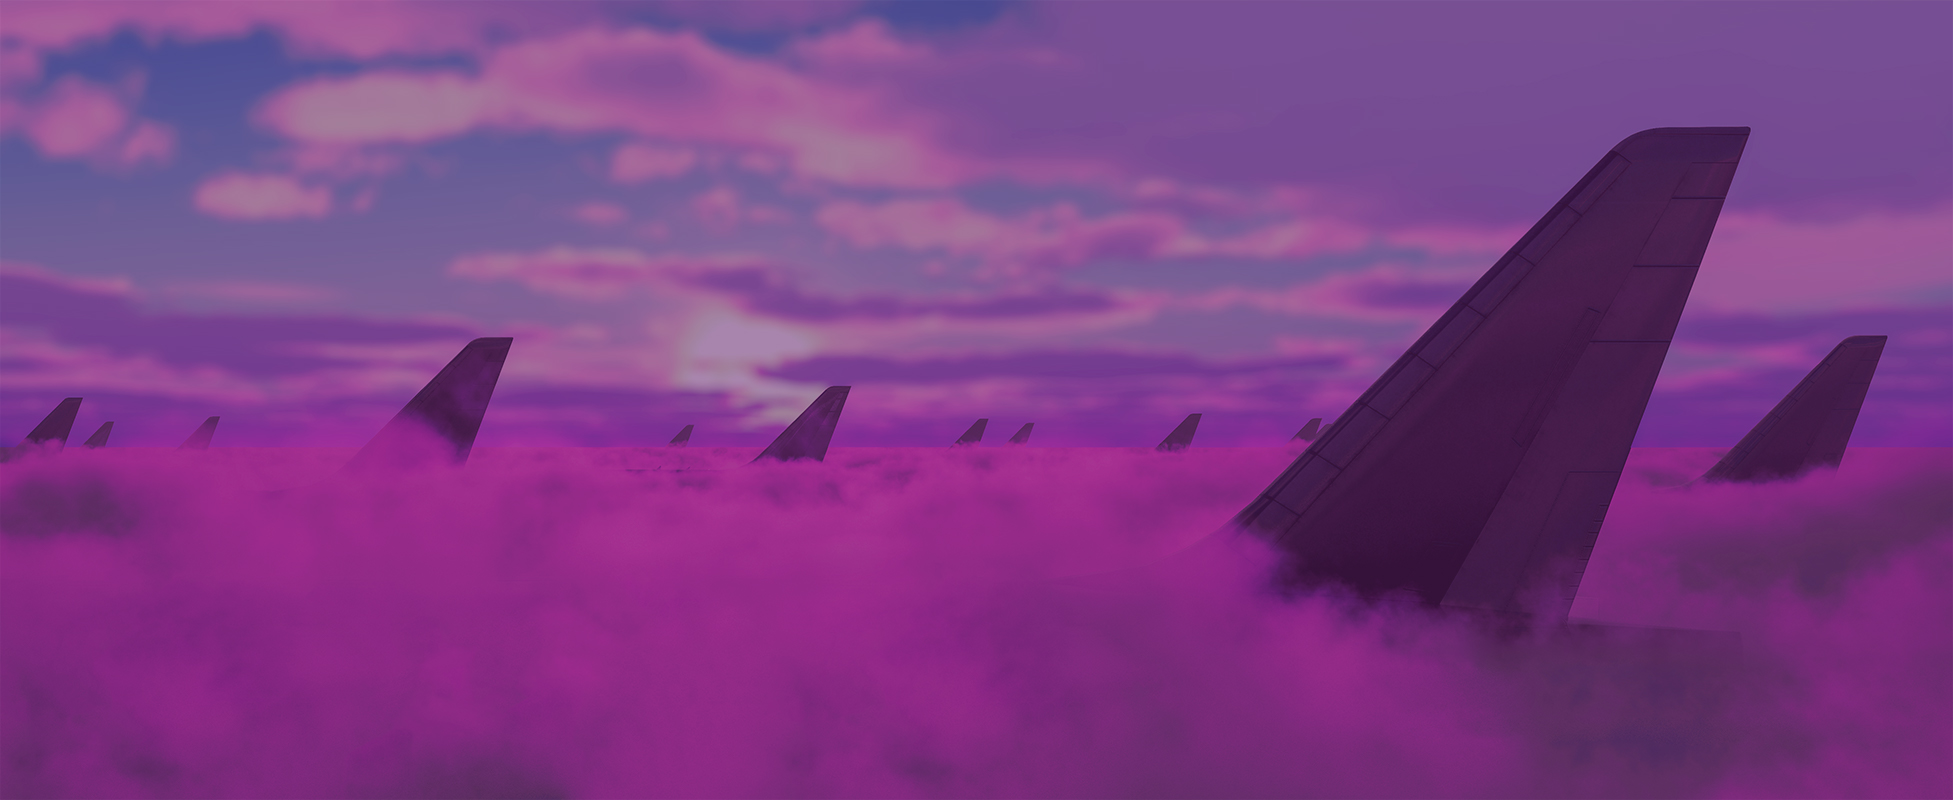 Background image of pink clouds against a pink and blue sky. The lower half is filled with clouds with the tails of numerous airplanes poking through.